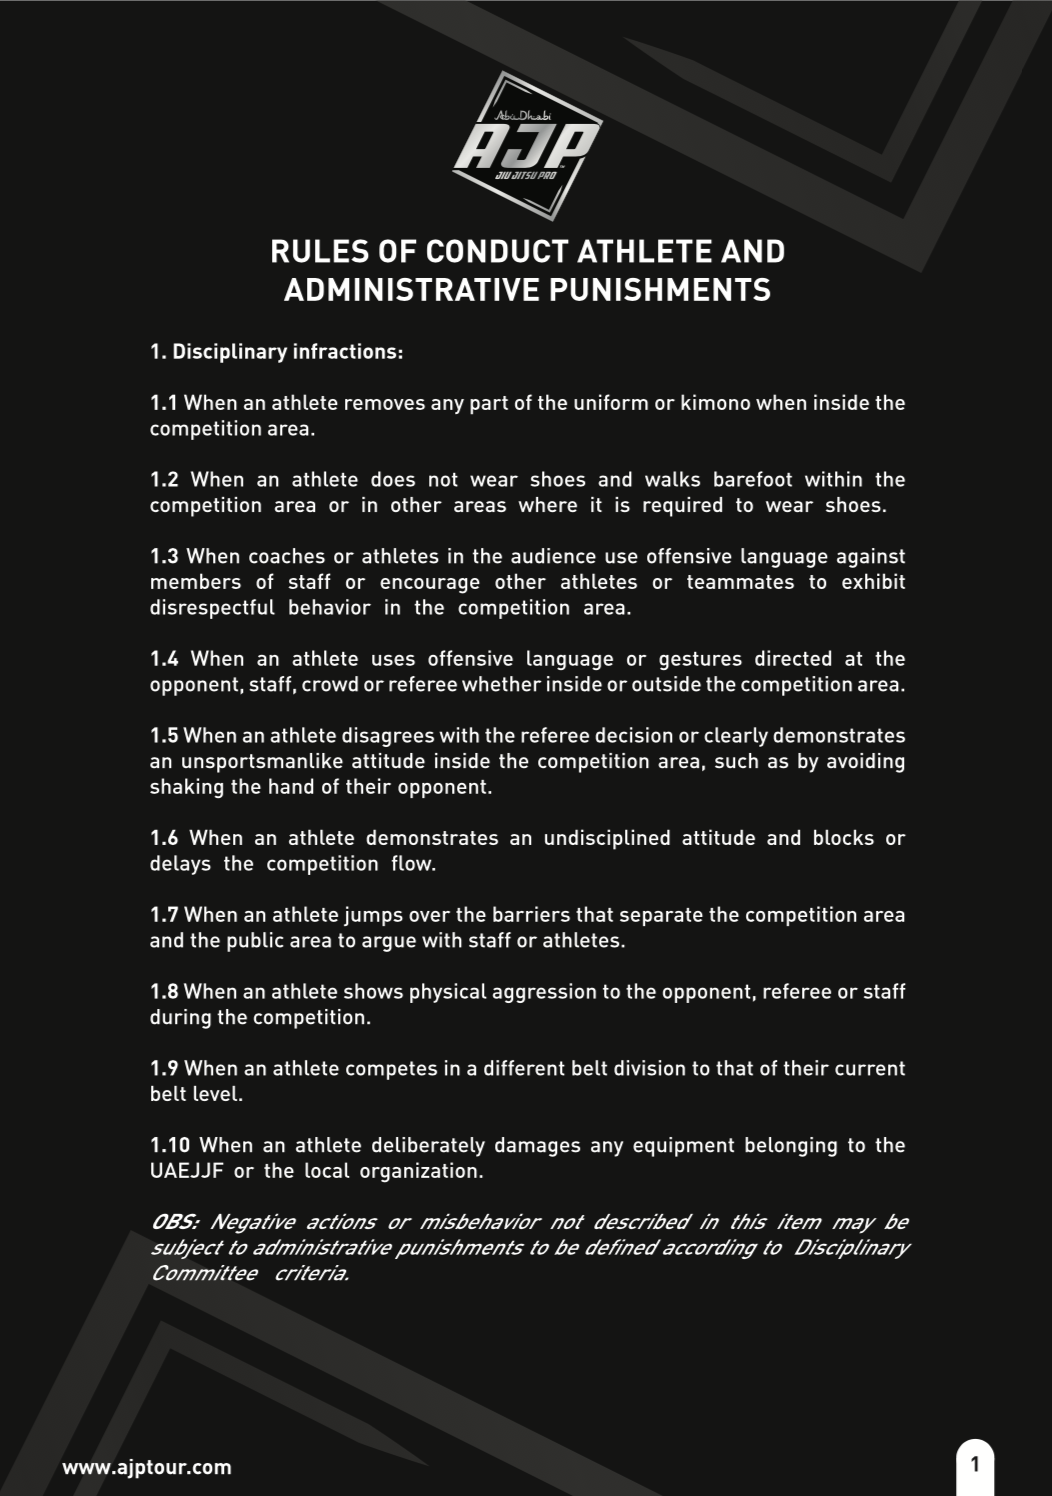 ajp-rules-20190728133807.png